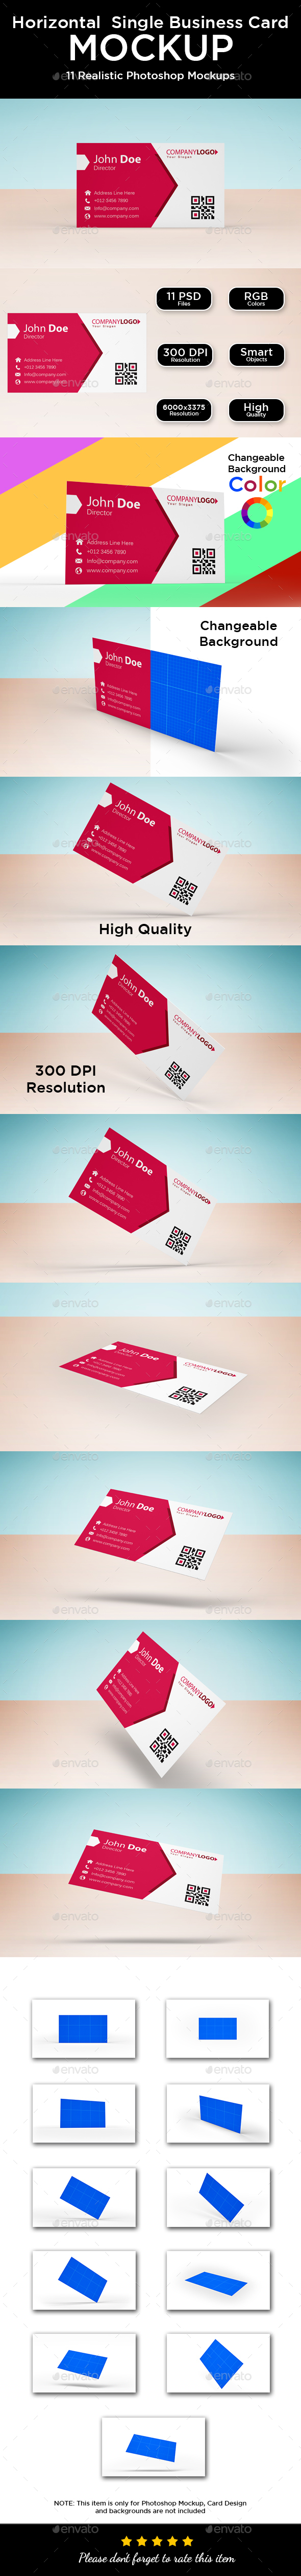 Business Card Mockup - Single Sided Horizontal - Business Cards Print